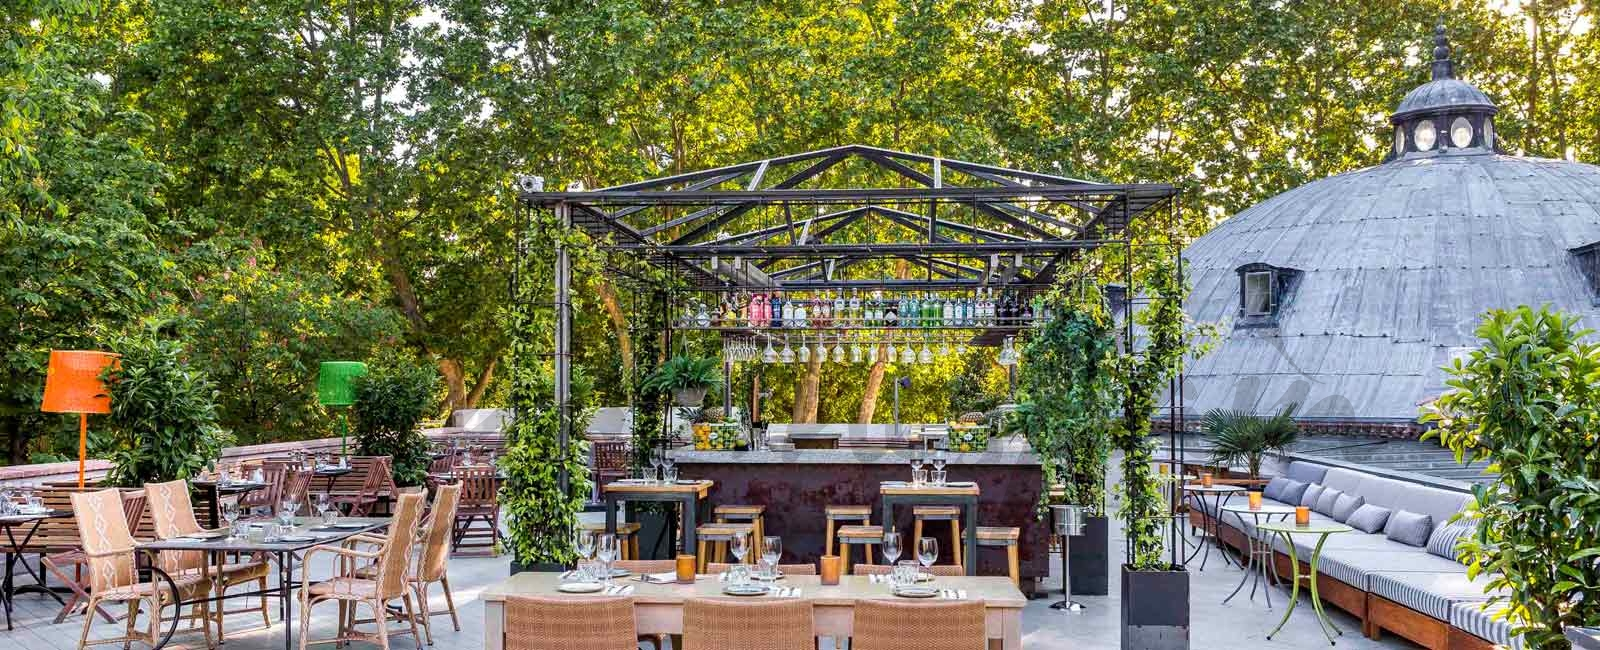 "«La Terraza"" y ""After Brunch"" llegan al Florida Retiro"